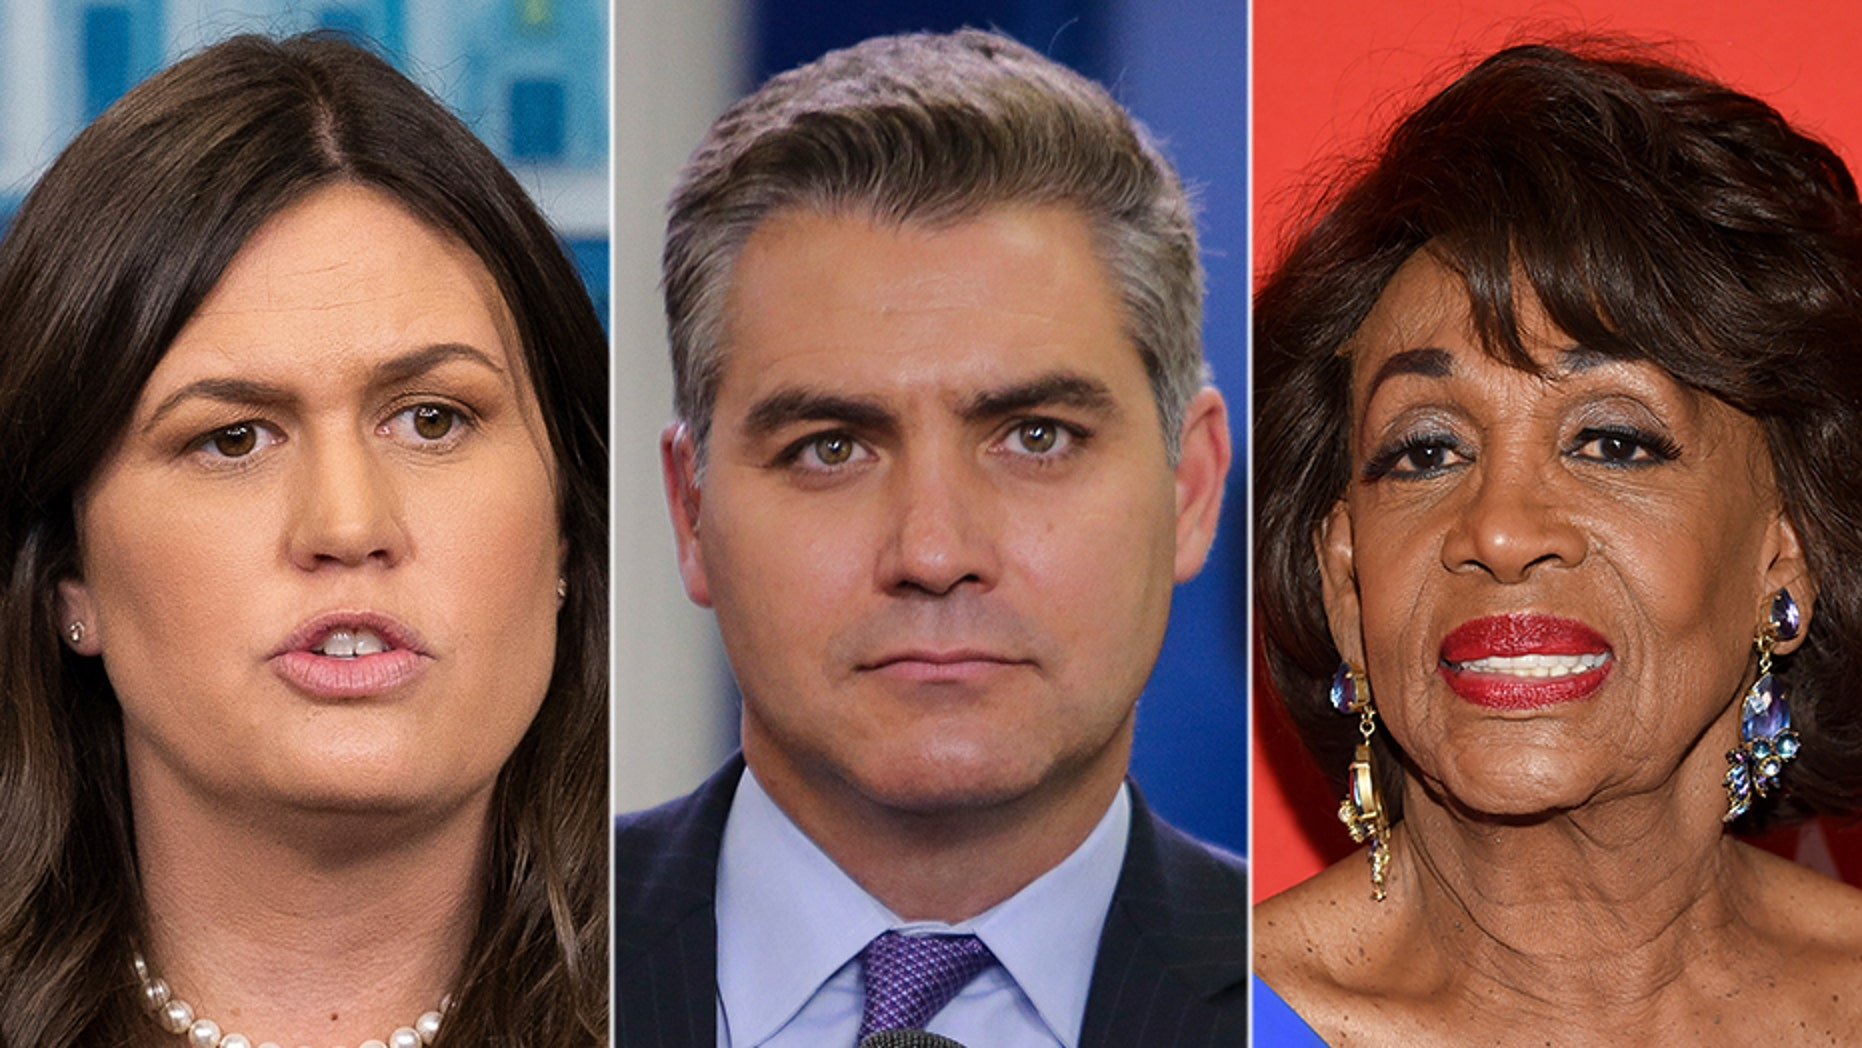 Sarah Sanders, Jim Acosta and Maxine Waters have united people on both sides of the political spectrum – but for different reasons.